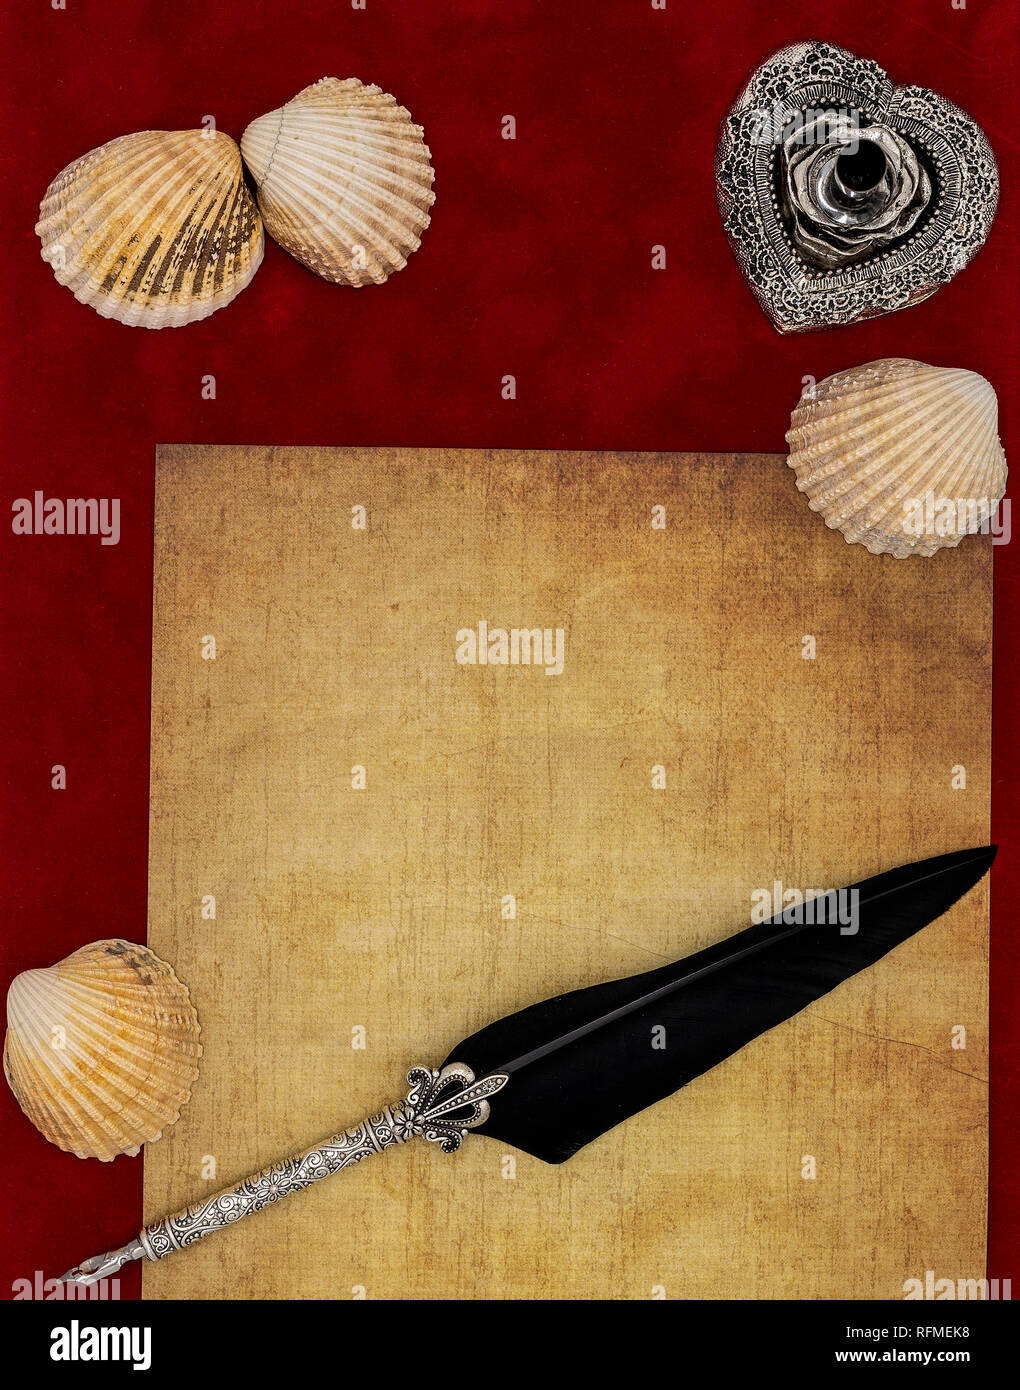 Classic Valentine's Day card idea vintage parchment seashells silver quill and stand blank love letter on burgundy velvet fabric top view - Stock Image